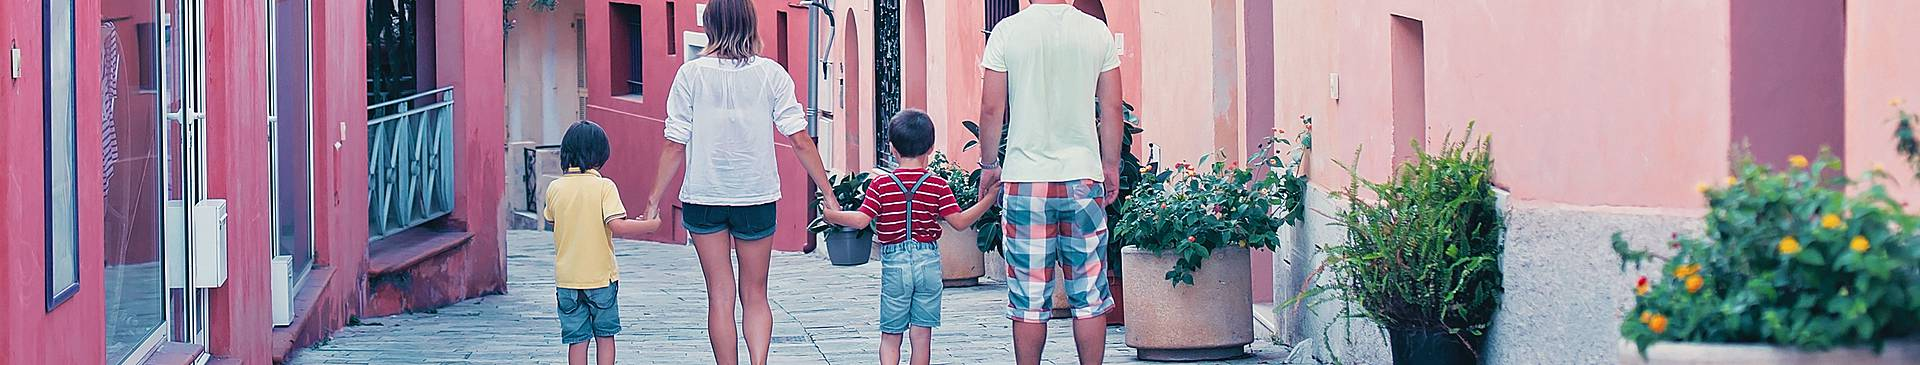 Family vacations in France